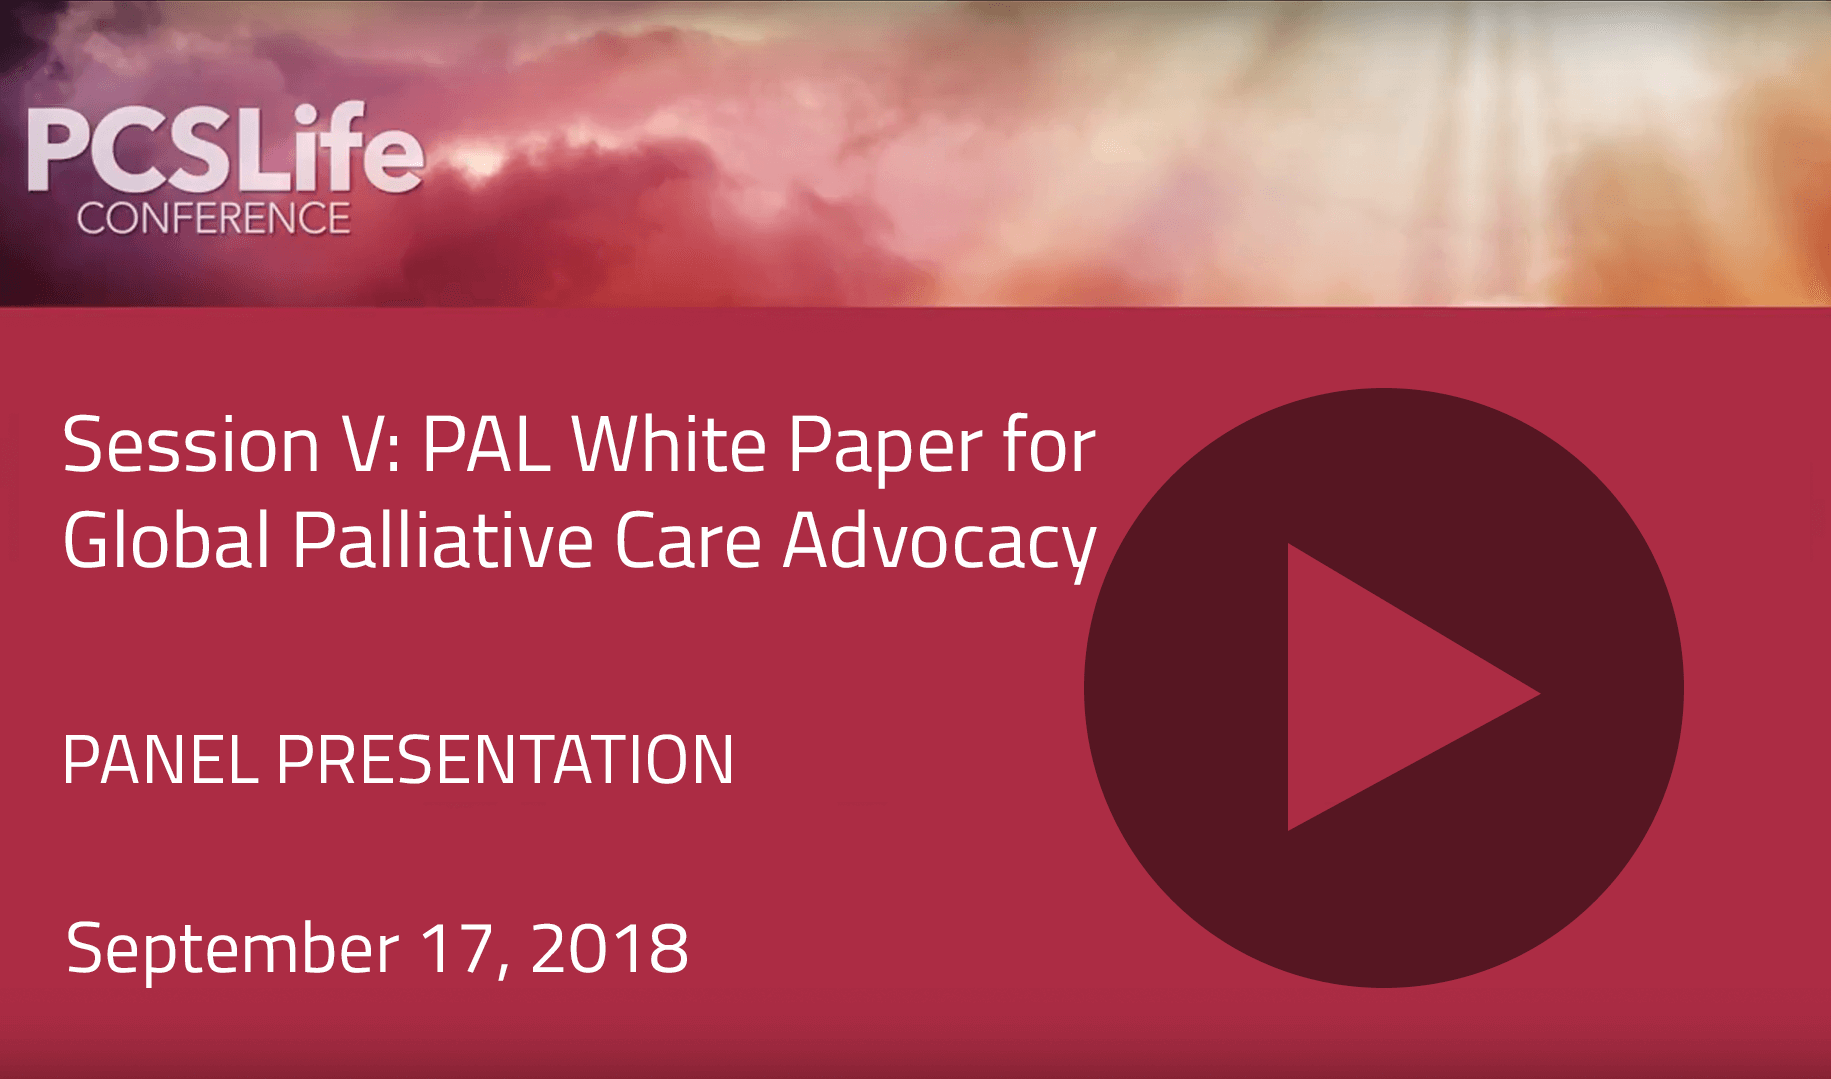 Session Five: PAL White Paper for Global Palliative Care Advocacy